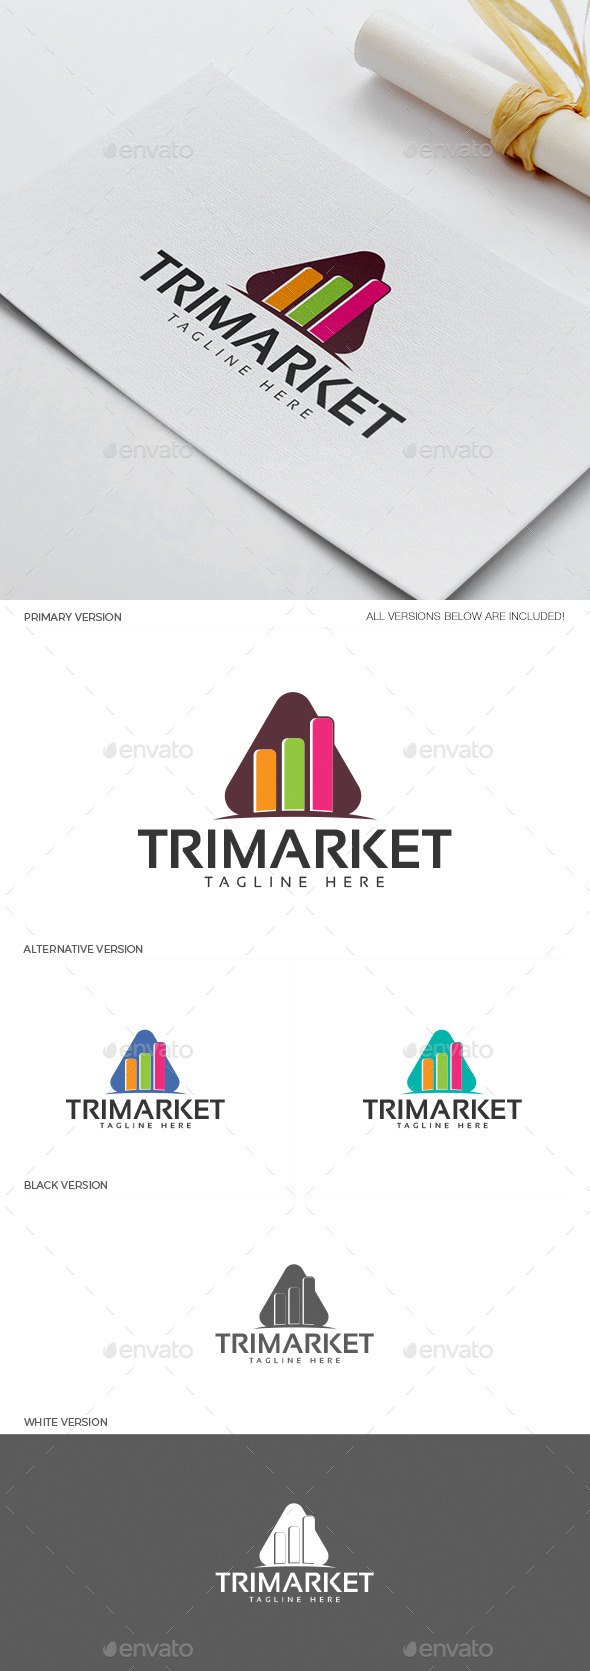 GraphicRiver Trimarket Logo 11937946